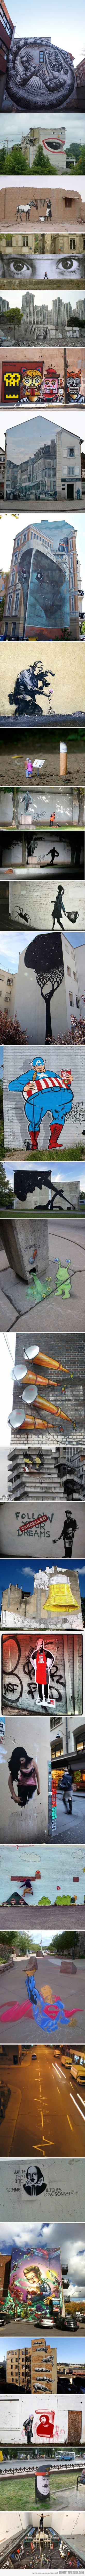 """@Kayla Kidd; you have it in you.♥ previous pinner posted: """"Arte callejero , hermoso"""""""